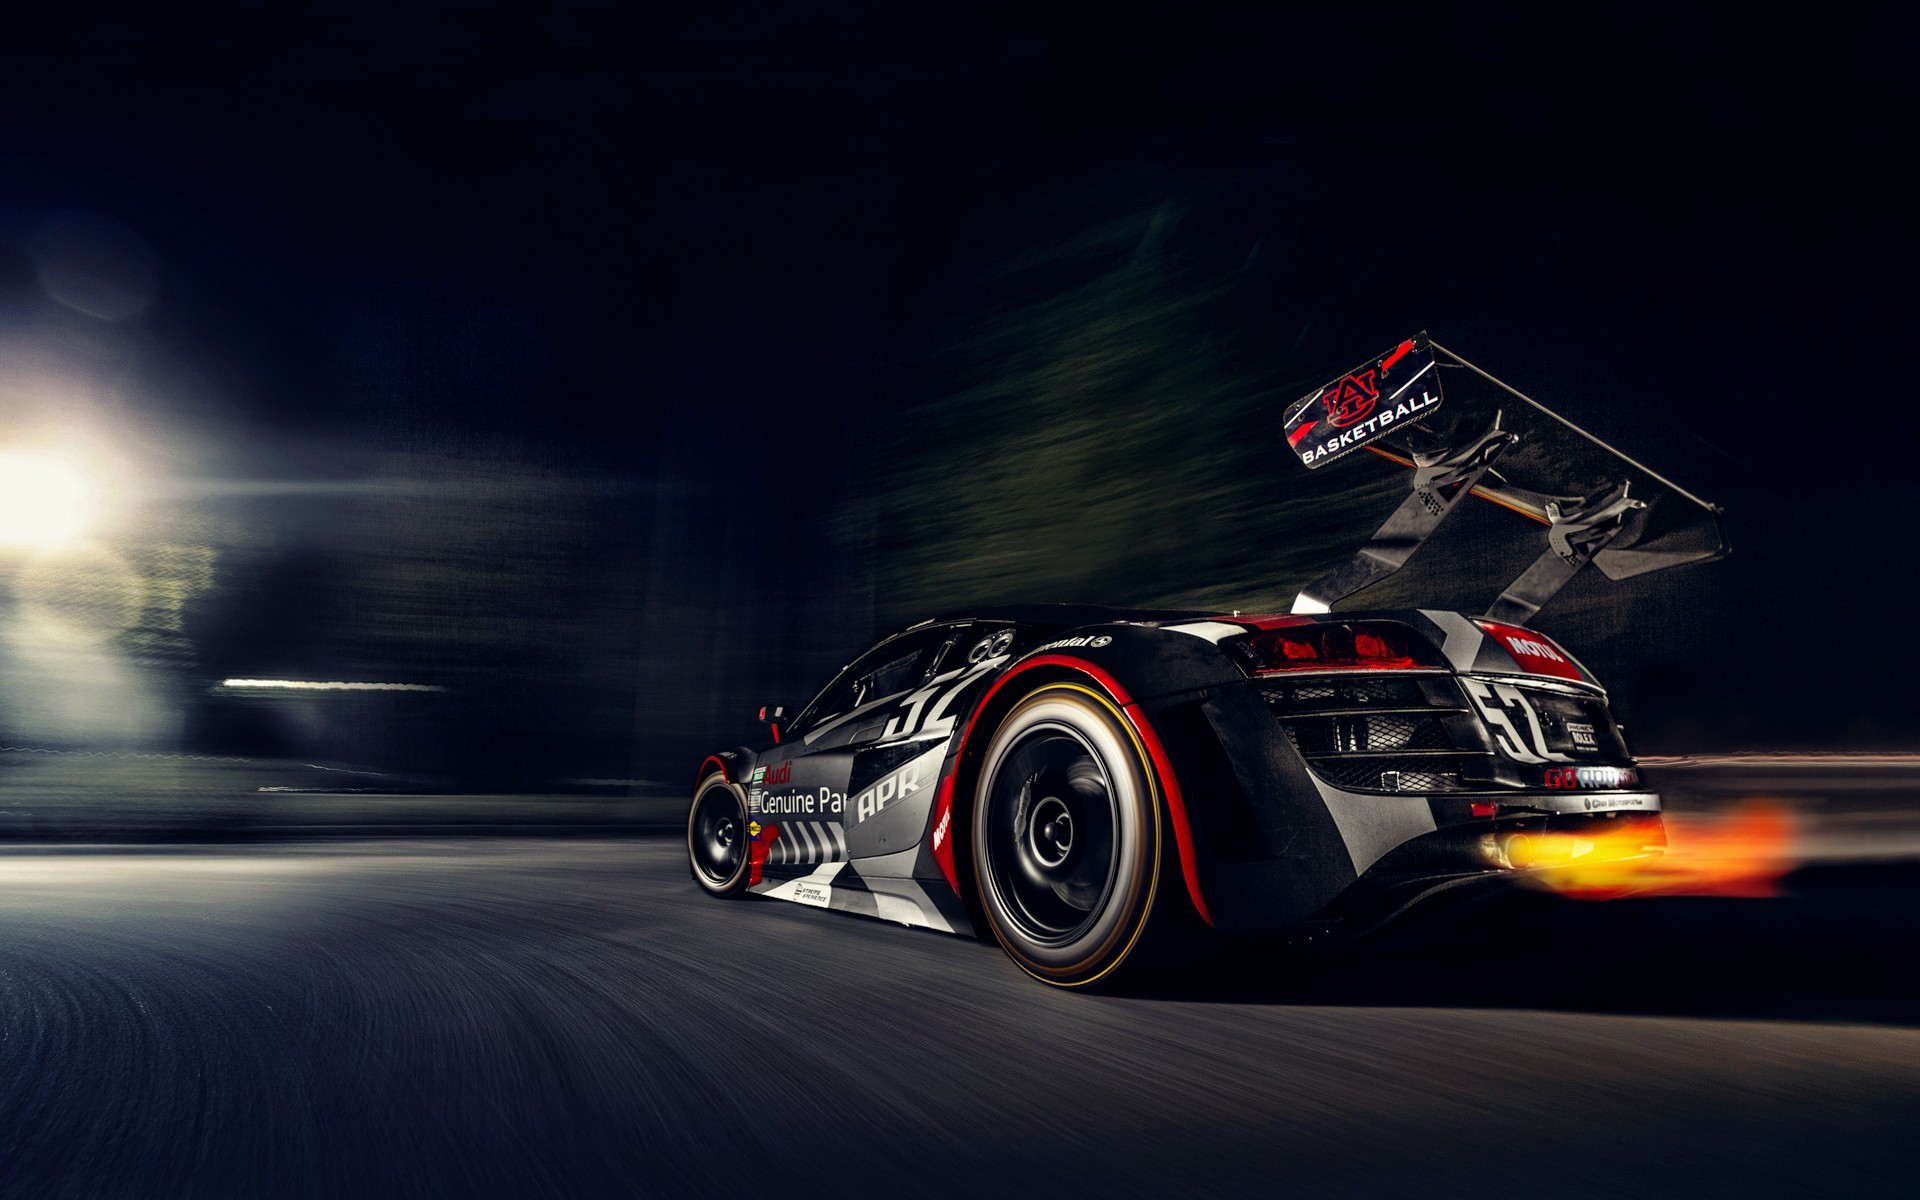 Racing Car Wallpapers Hd 2 Hd Wallpaper Wallpaper 1920x1200